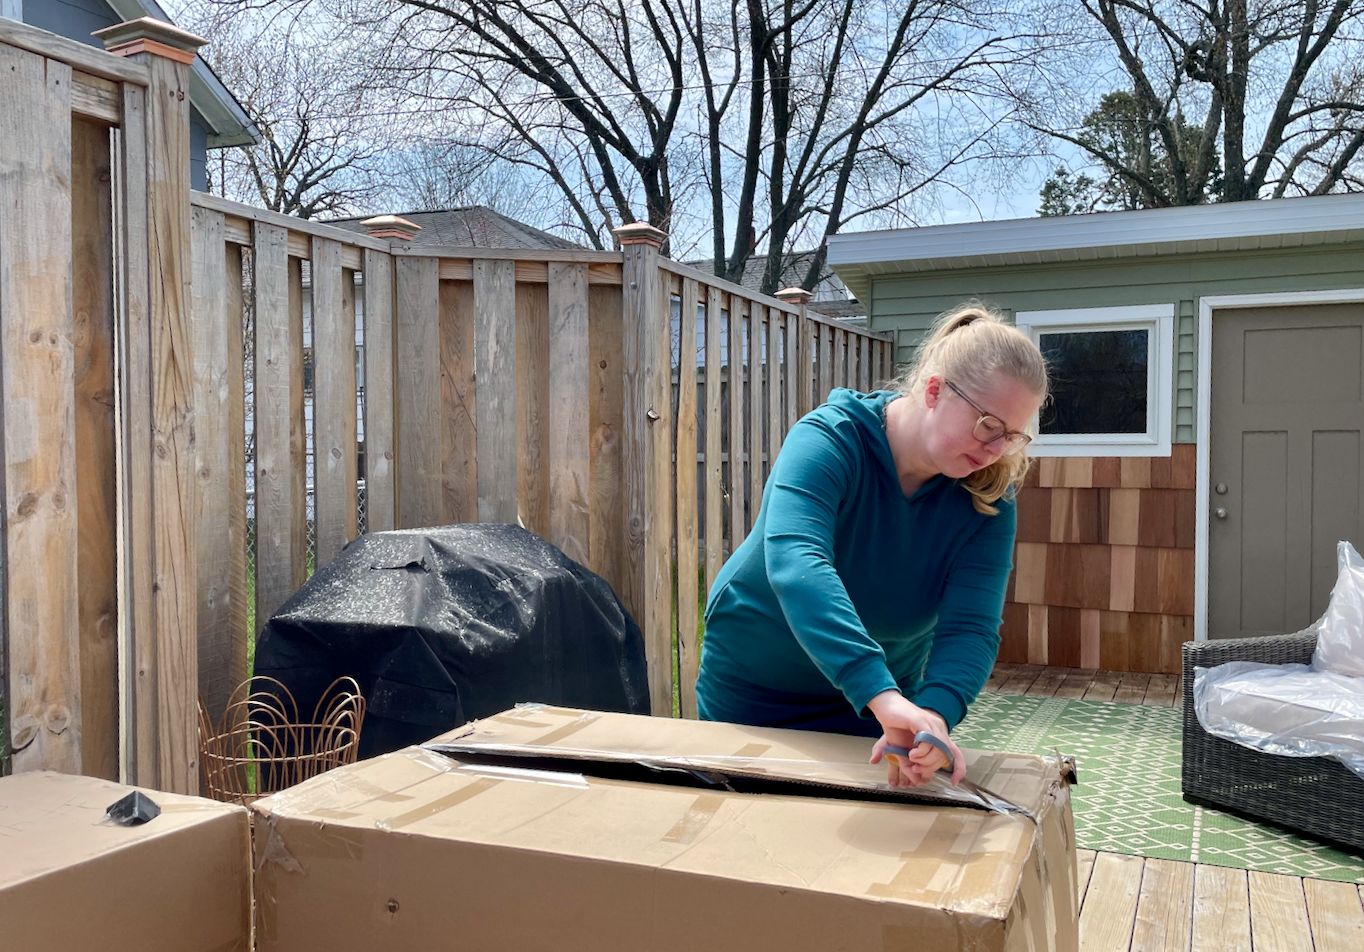 Unpacking the Ajna Living Furniture delivery.